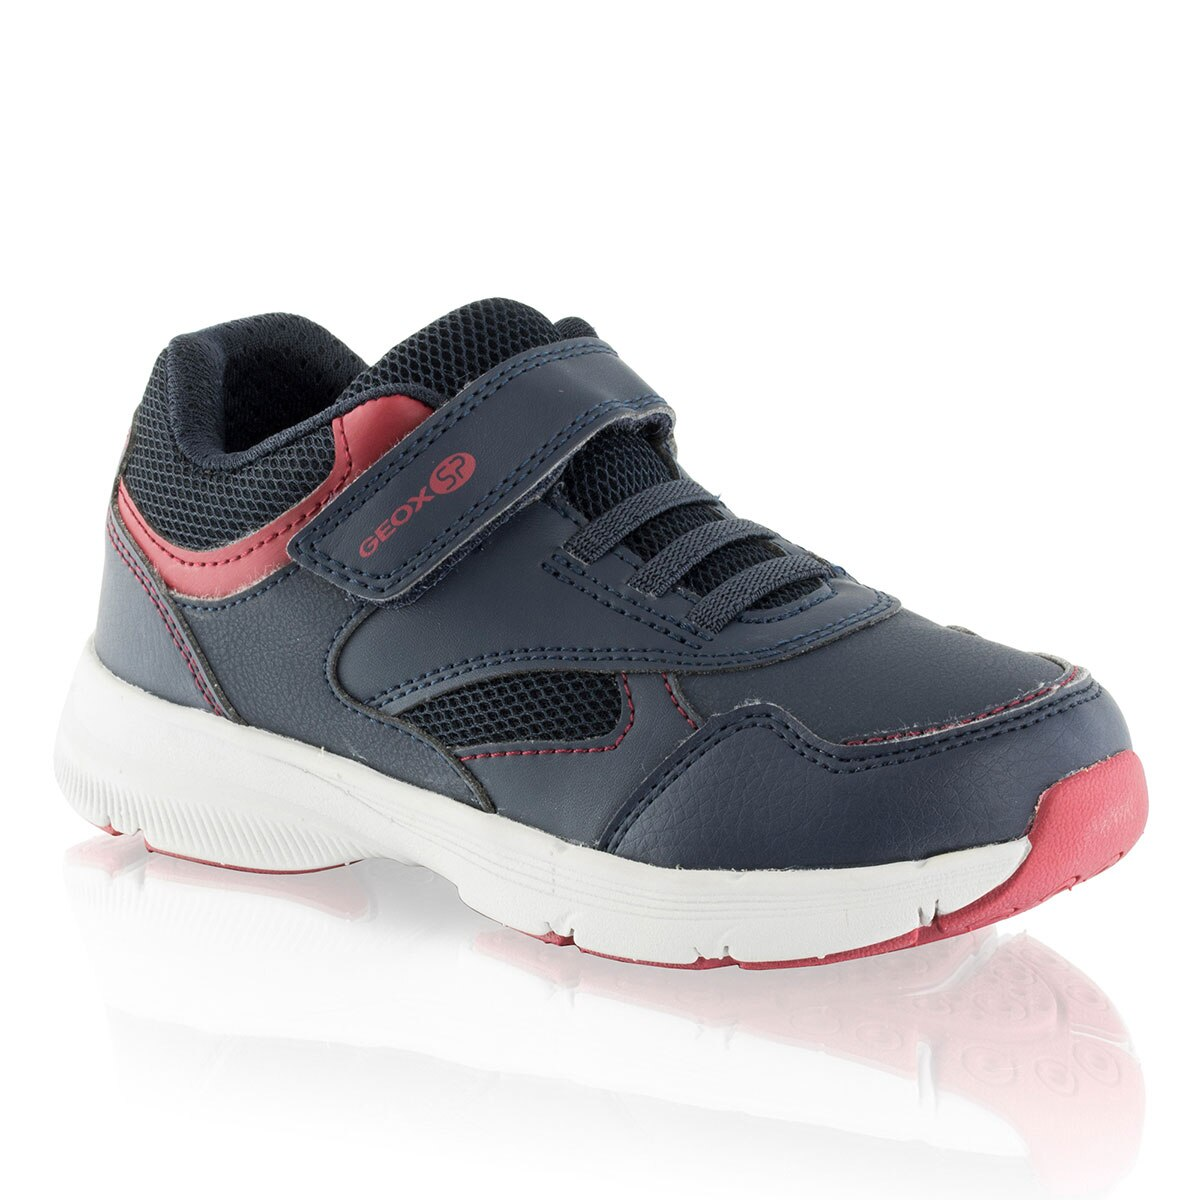 Russell and Bromley HOSHIKO Velcro/Lace-Up Sneaker